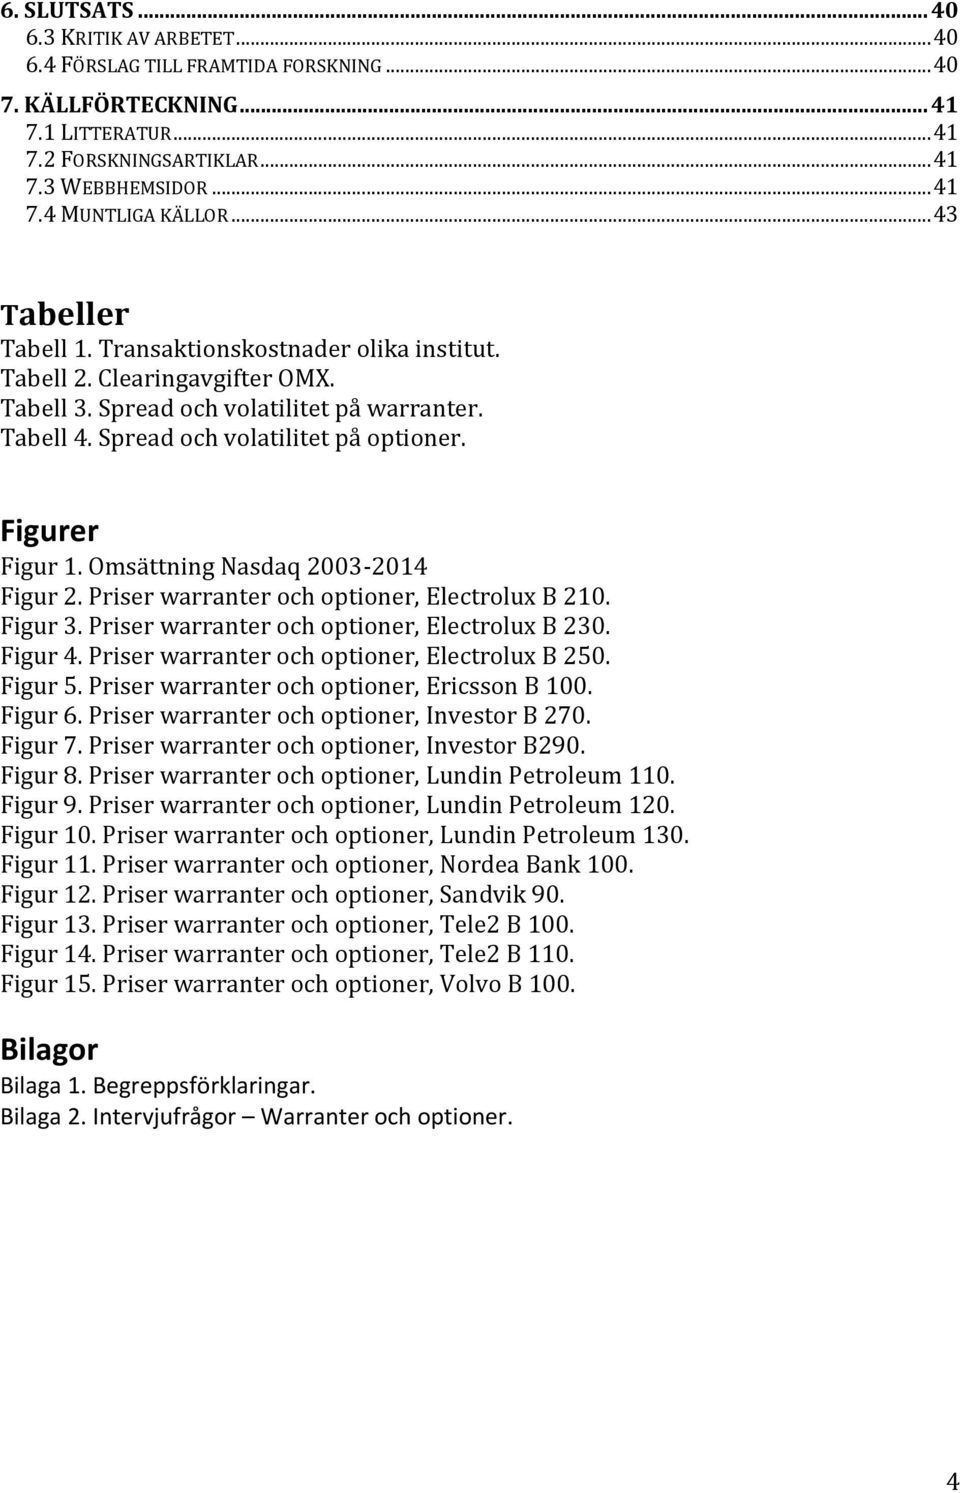 Figurer Figur 1. Omsättning Nasdaq 2003-2014 Figur 2. Priser warranter och optioner, Electrolux B 210. Figur 3. Priser warranter och optioner, Electrolux B 230. Figur 4.